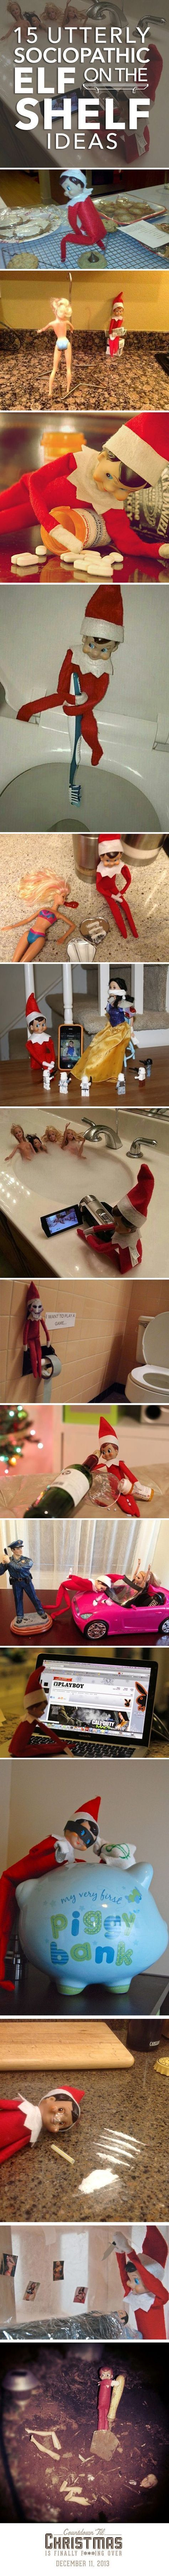 20 Ideas funny christmas tree ideas hilarious elf on the shelf for 2019 ,  #Christmas #Elf #F... #elfontheshelfideasfunnyhilarious 20 Ideas funny christmas tree ideas hilarious elf on the shelf for 2019 ,  #Christmas #Elf #Funny #Hilarious #Ideas #Shelf #Tree #elfontheshelfideasfunnyhilarious